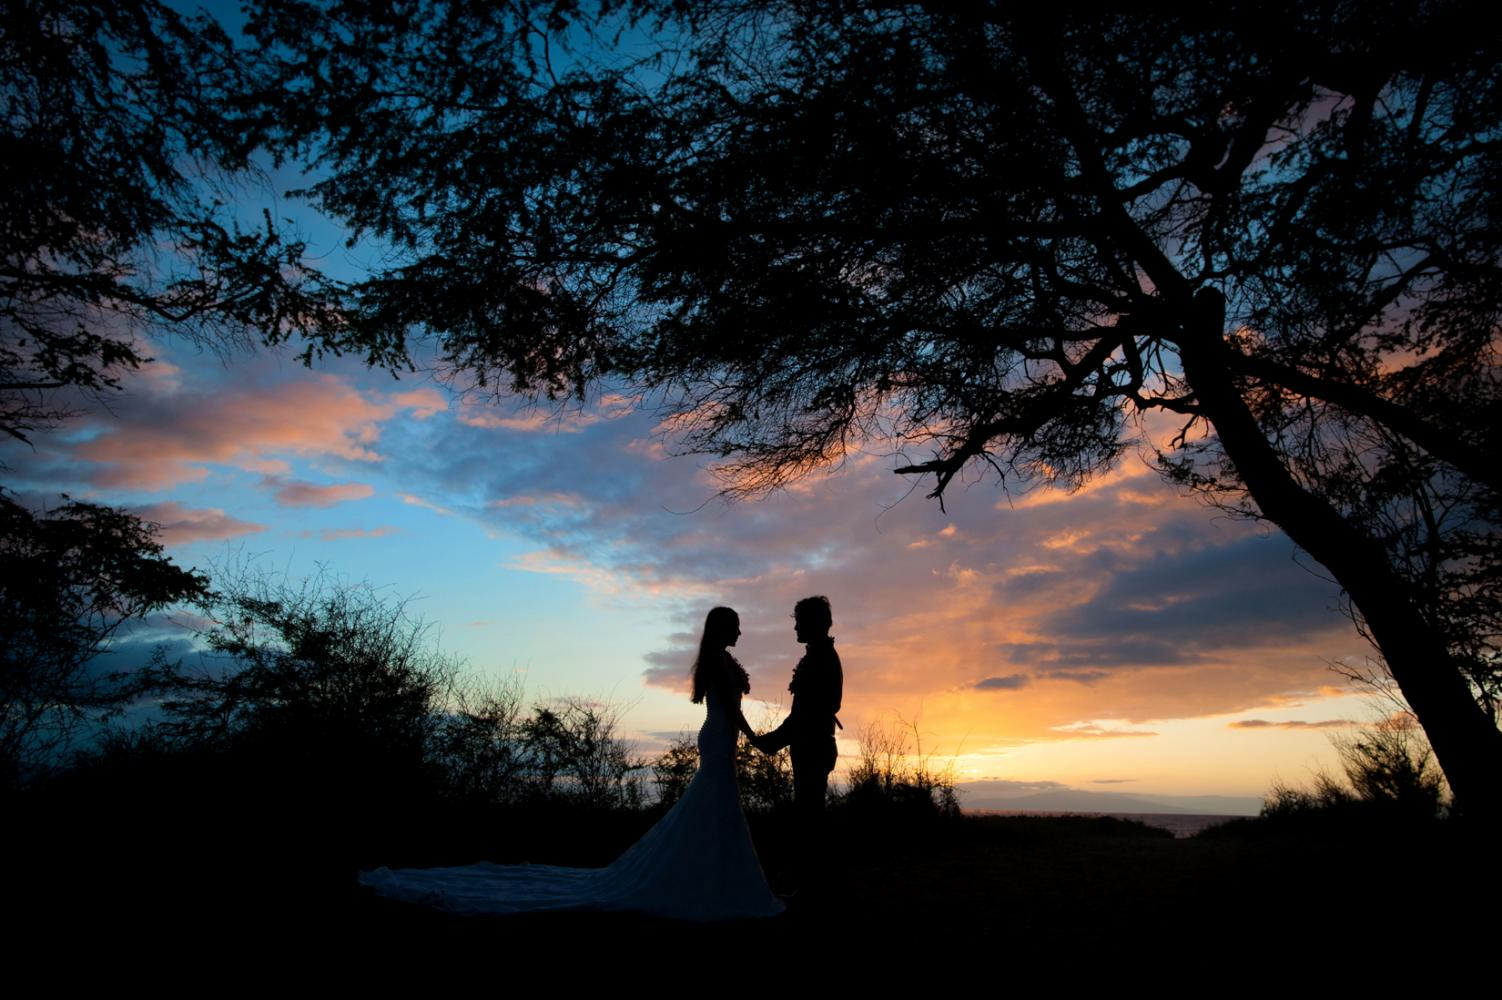 Maui Hawaii Beach Wedding Photographer, マウイカメラマン、写真家、Maui Photography, White Rock Beach